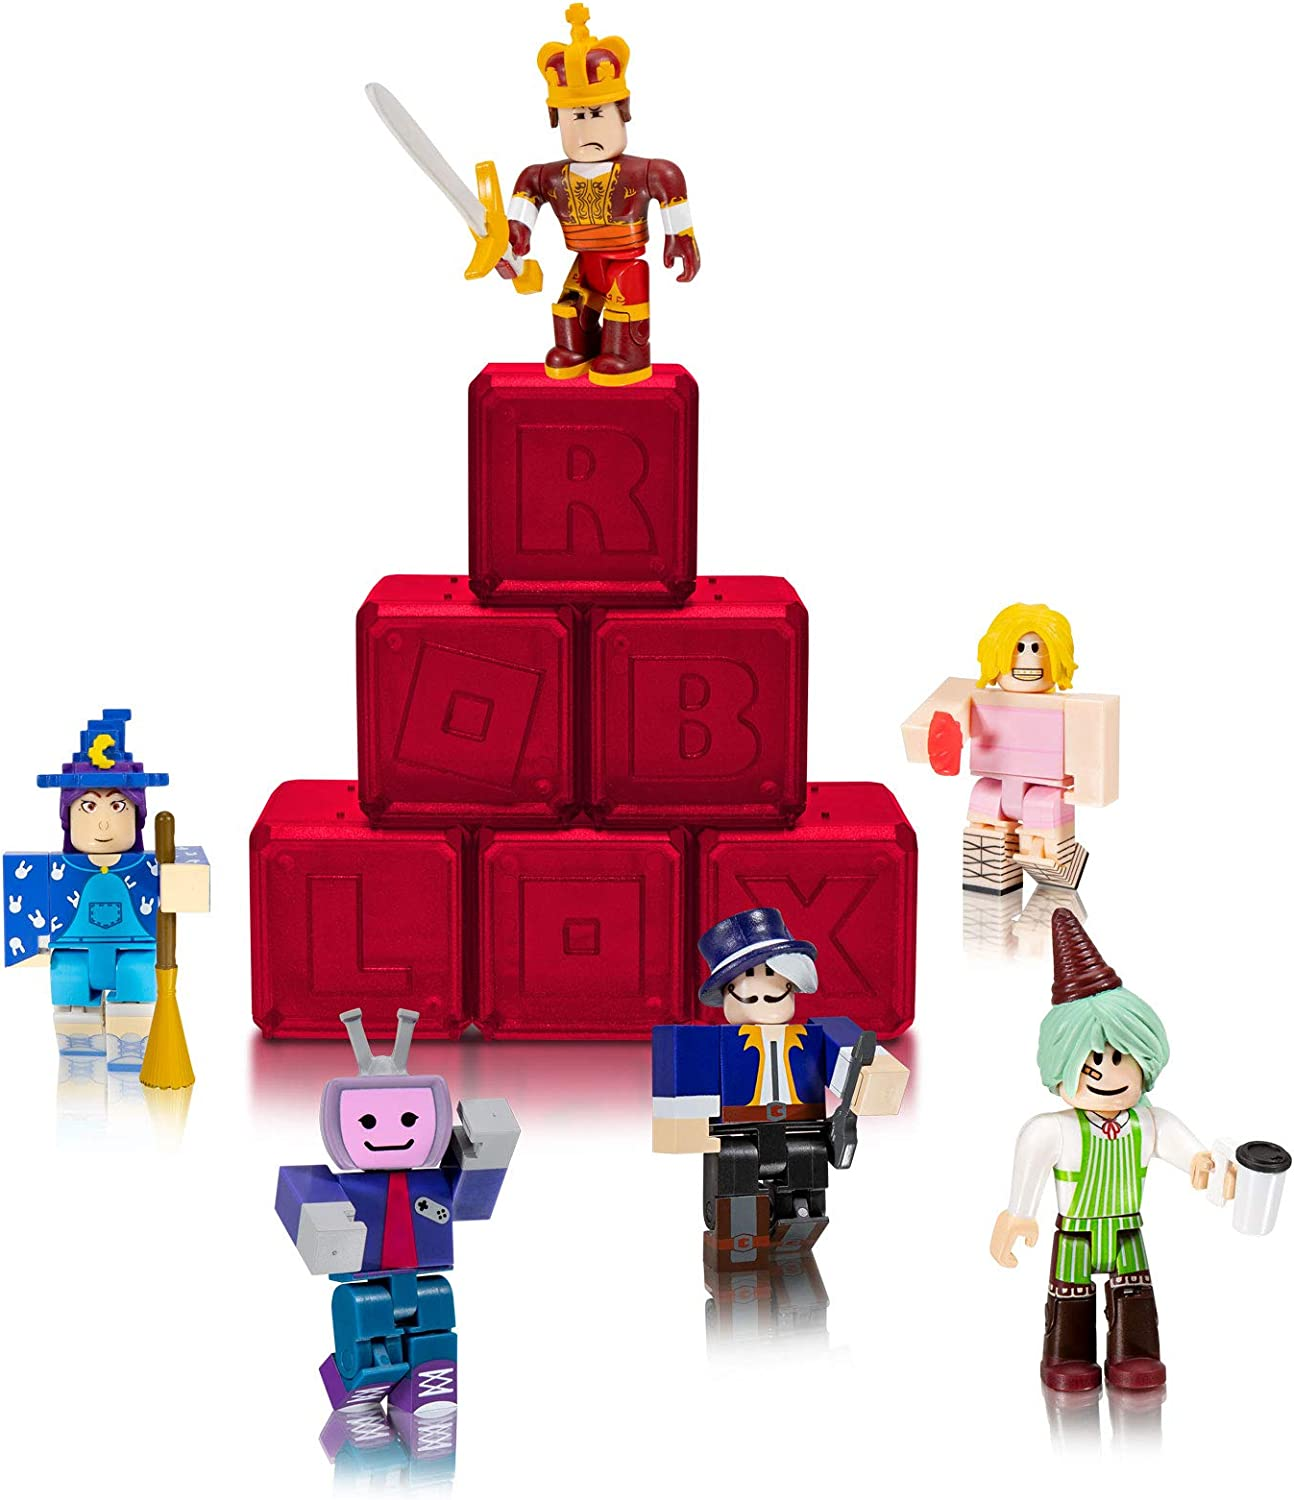 Roblox 5 Amazon Com Roblox Celebrity Collection Series 5 Mystery Figure 6 Pack Includes 6 Exclusive Virtual Items Toys Games